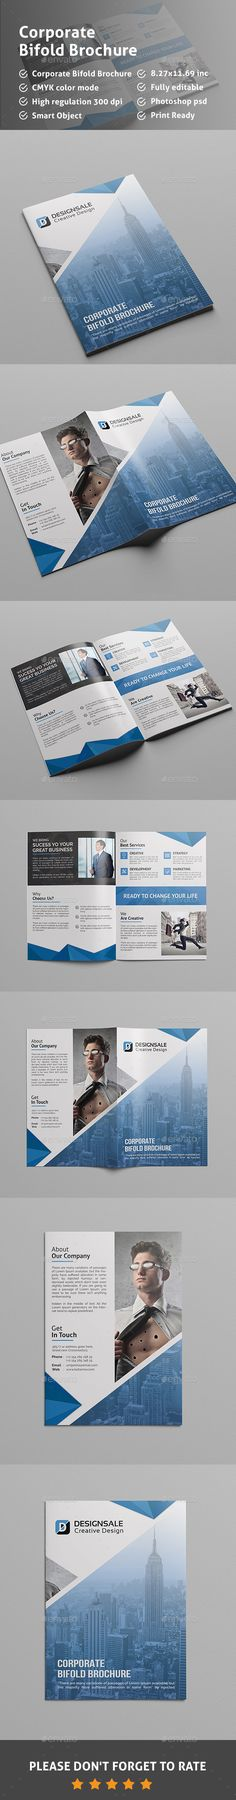 Corporate Bifold Brochure Corporate Brochure Template by Pixelpick. Bi Fold Brochure, Business Brochure, Corporate Brochure, Brochure Design, Brochure Template, Information Graphics, Book Layout, Layout Design, Creative Design